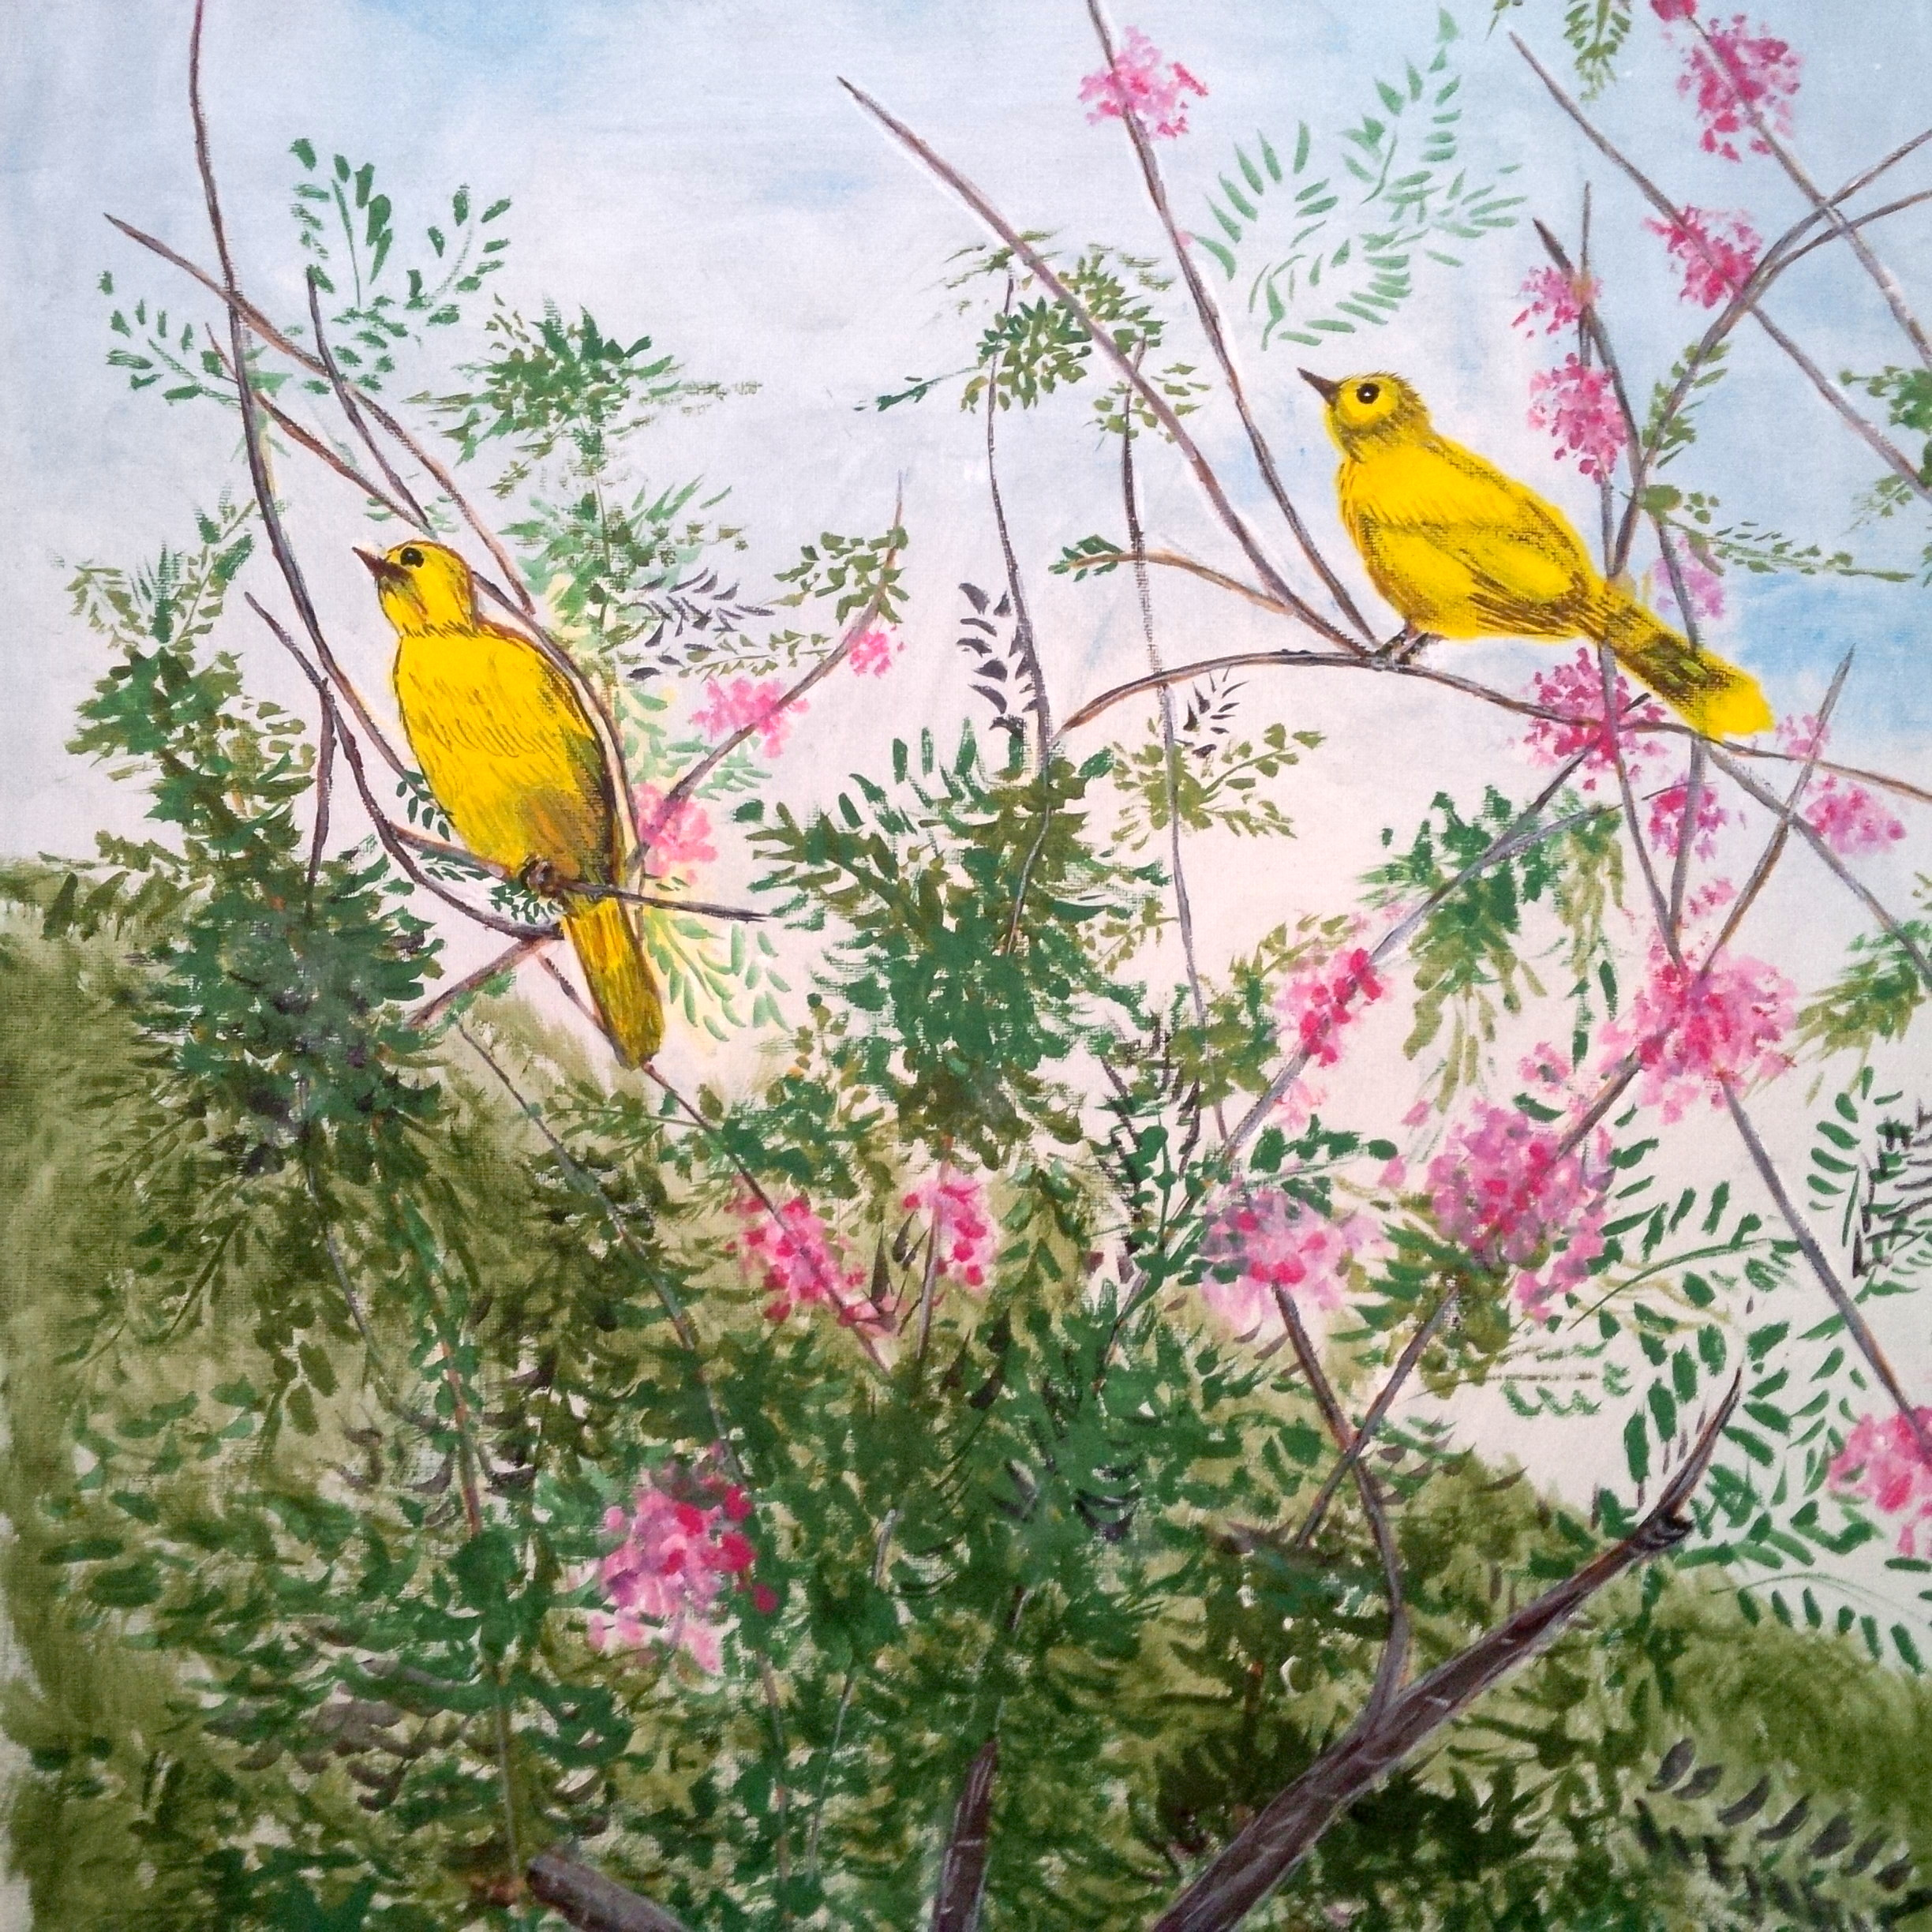 Yellow Birds In The Garden. Art By Ling